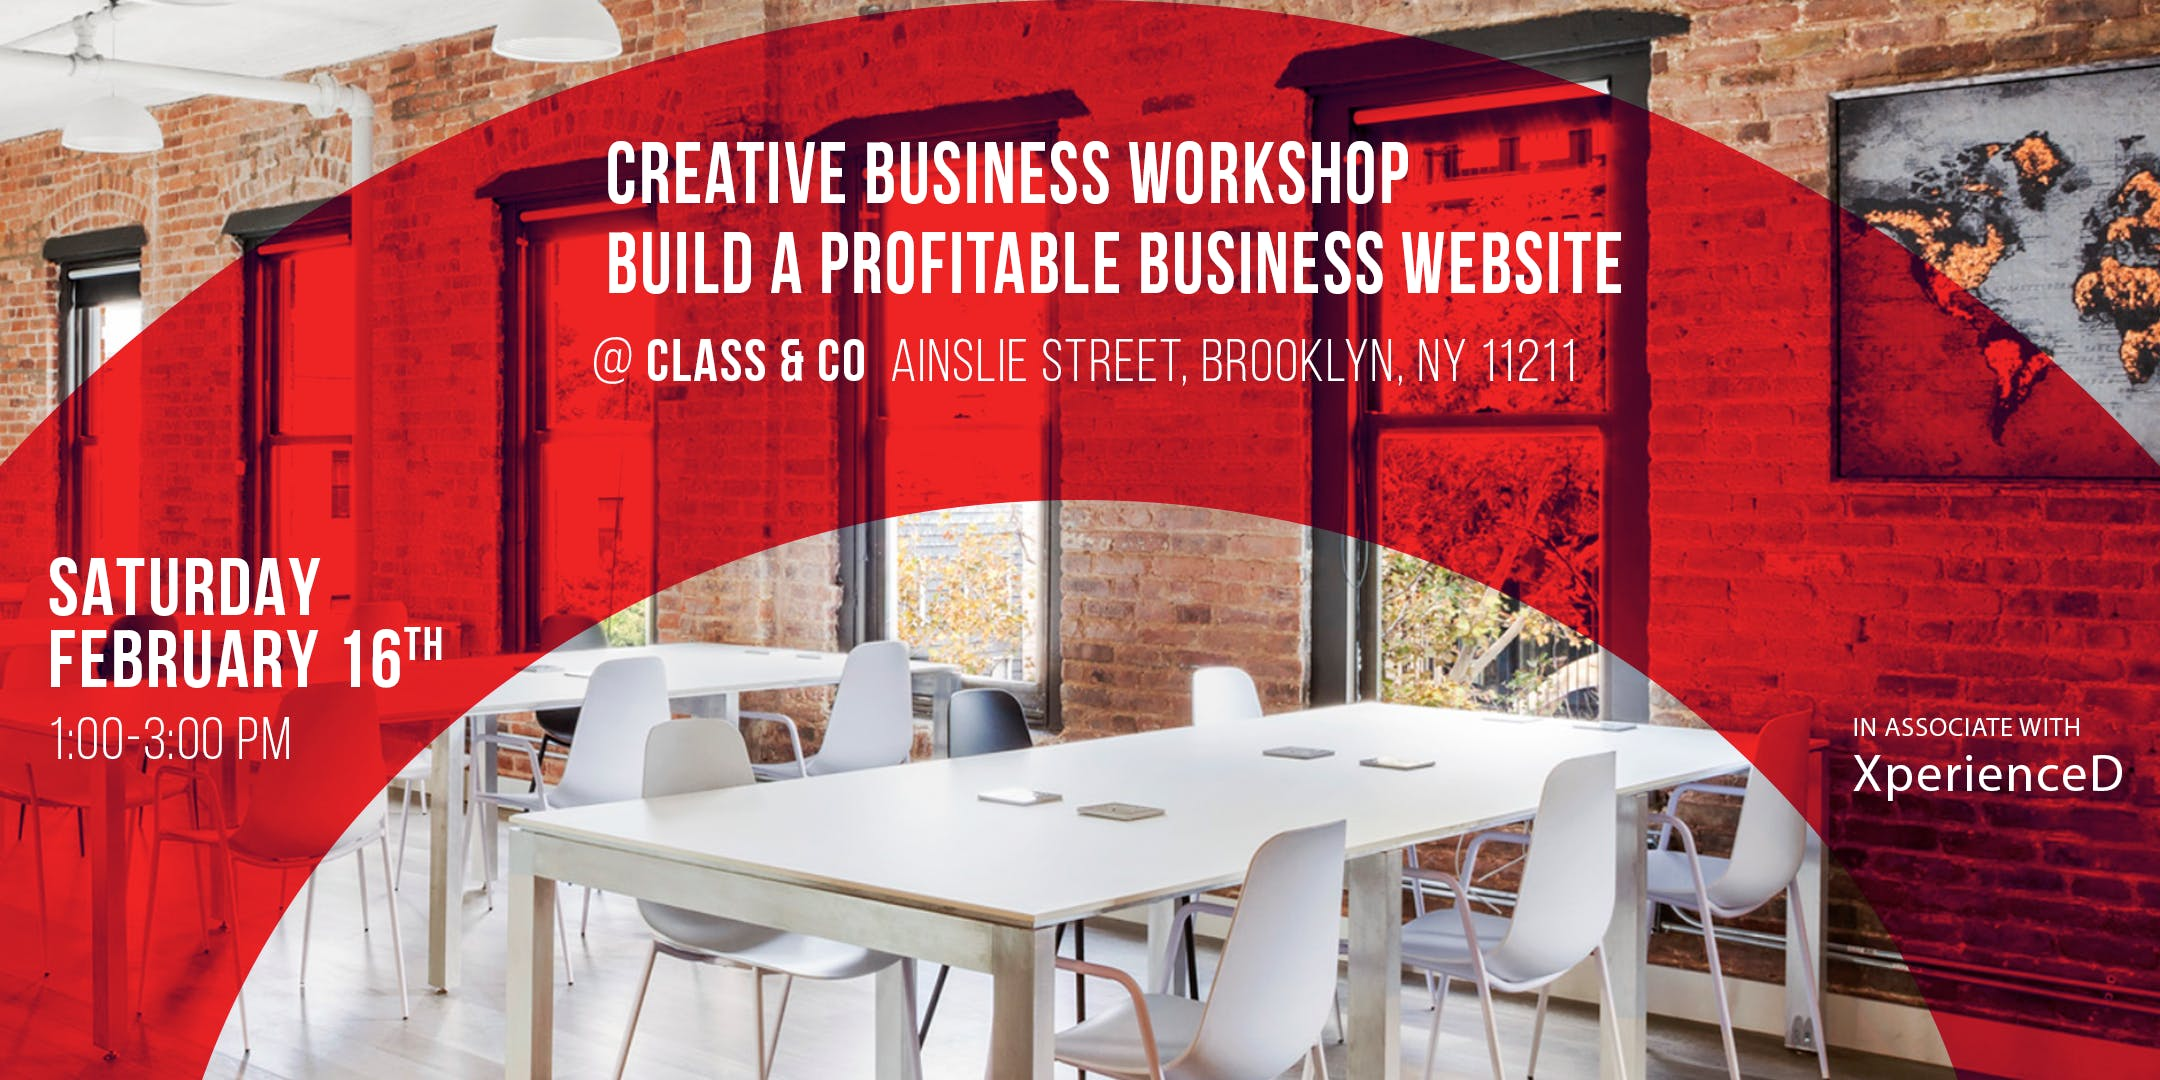 Creative Business Workshop | Build a profitab